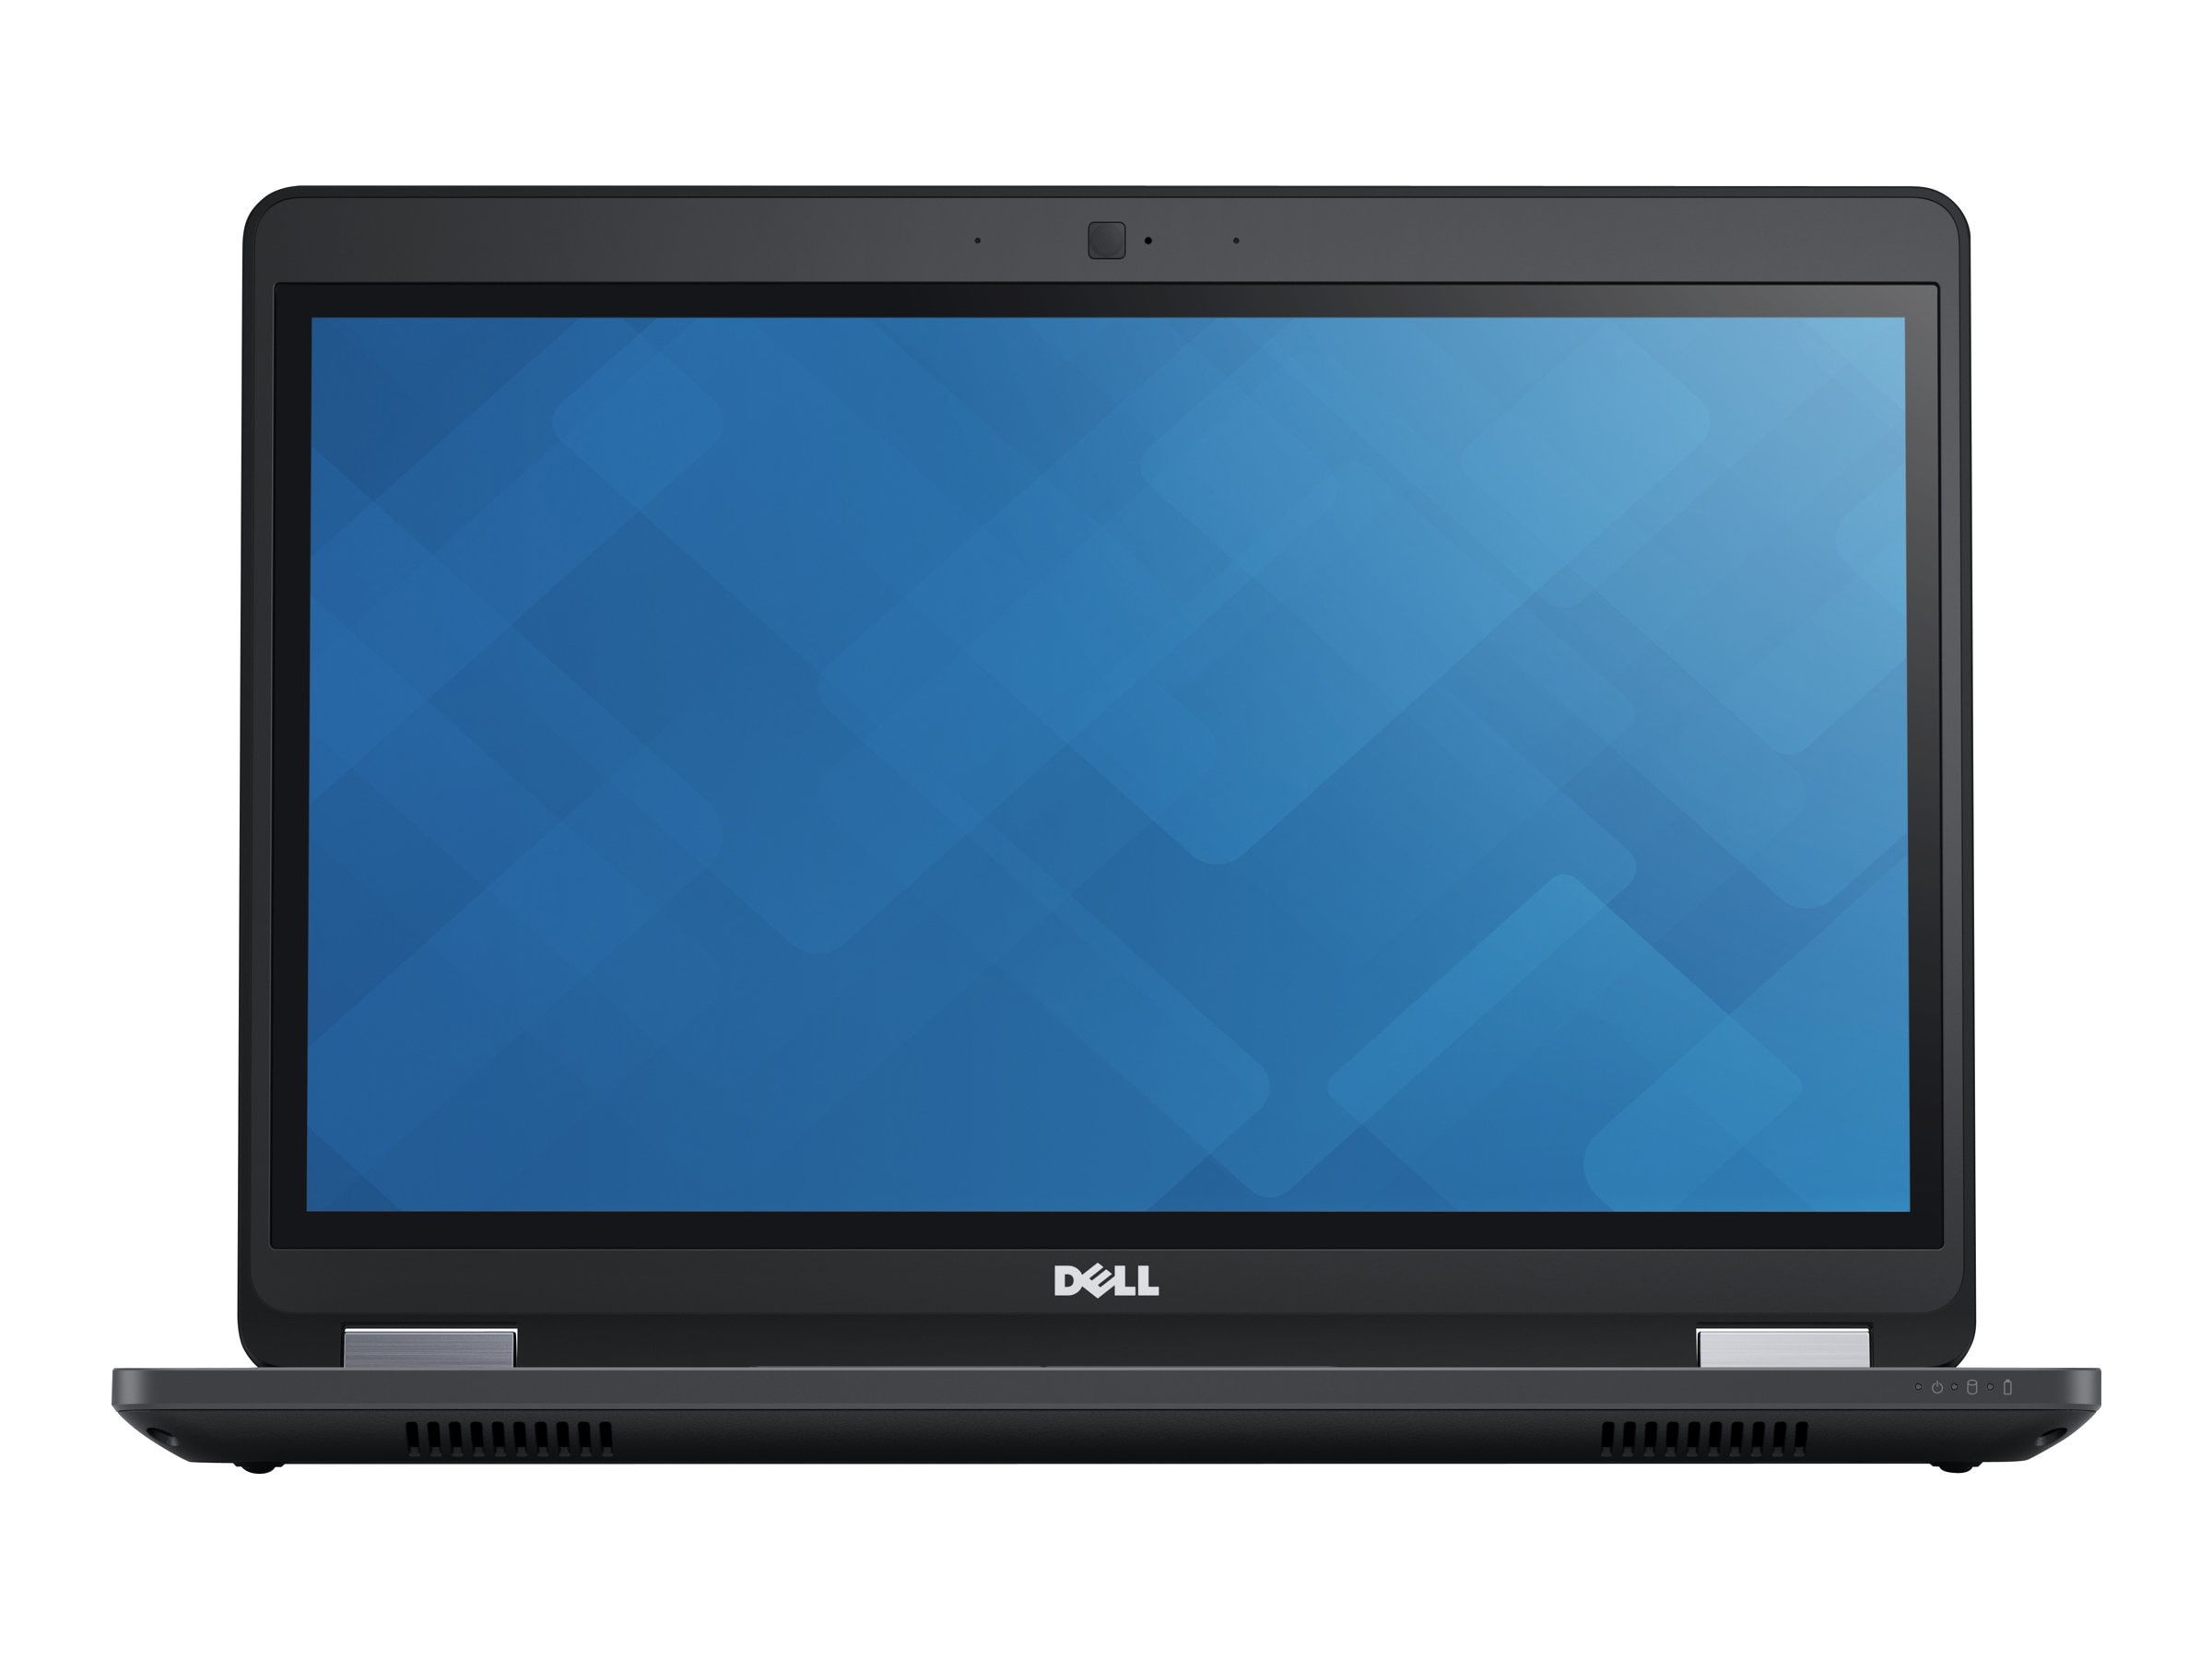 Dell Latitude E5470U Core i5-6300U 2.4GHz 8GB 128GB SSD ac BT WC 4C 14 HD W10P64, Y50C0